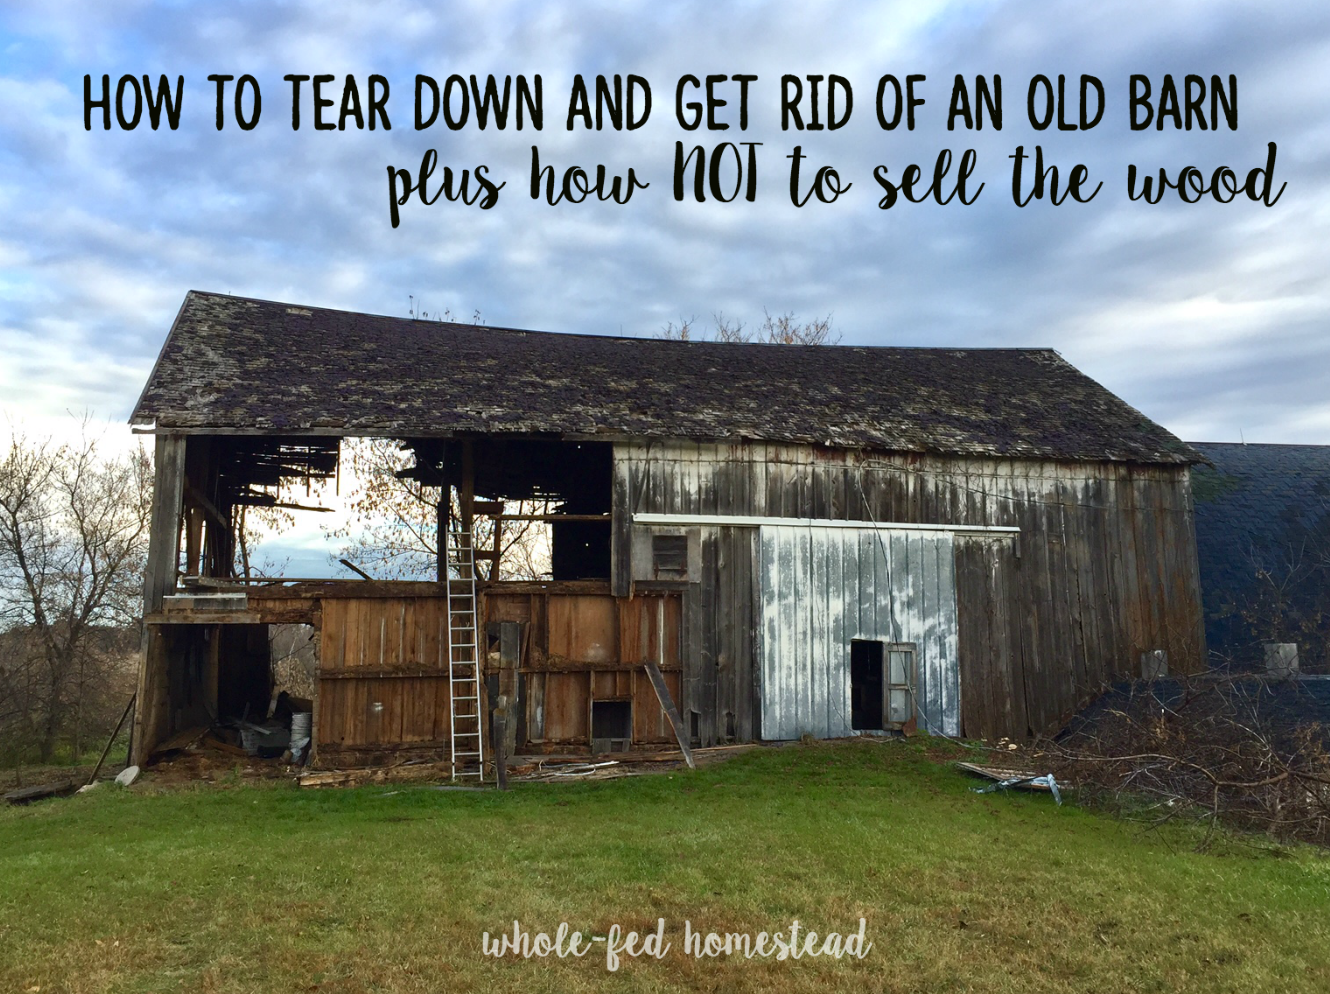 How To Tear Down And Get Rid Of An Old Barn Plus NOT